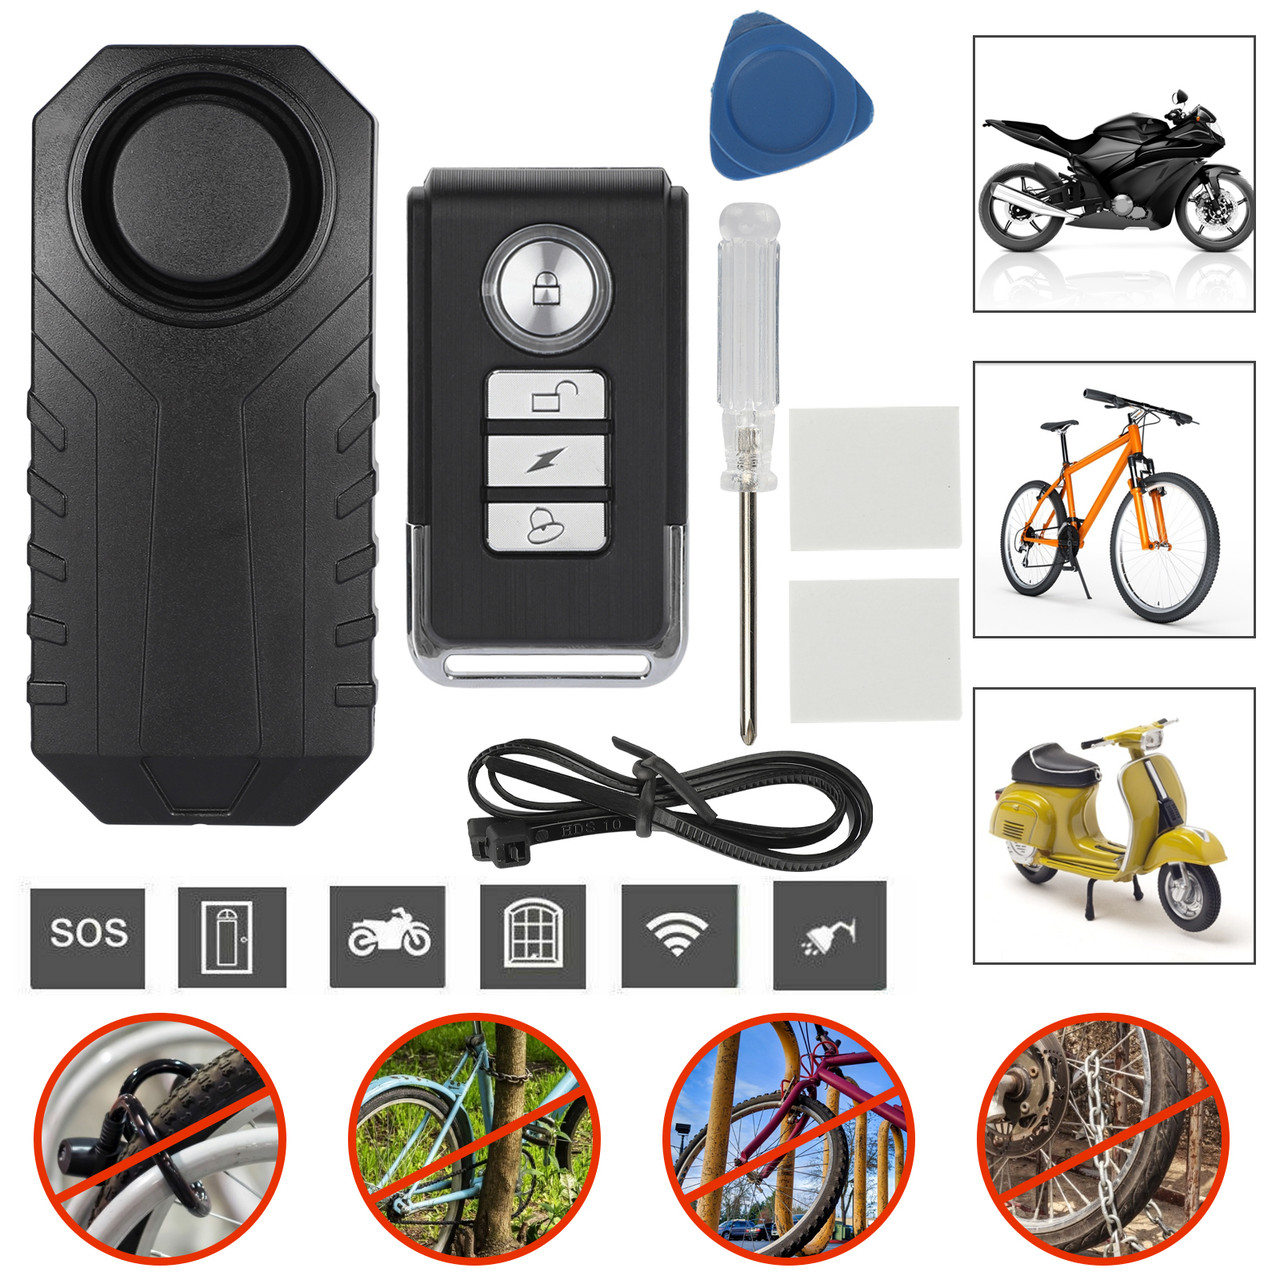 Motorcycle Bicycle Waterproof Security Alarm 113dB Wireless Anti-Theft Vibration